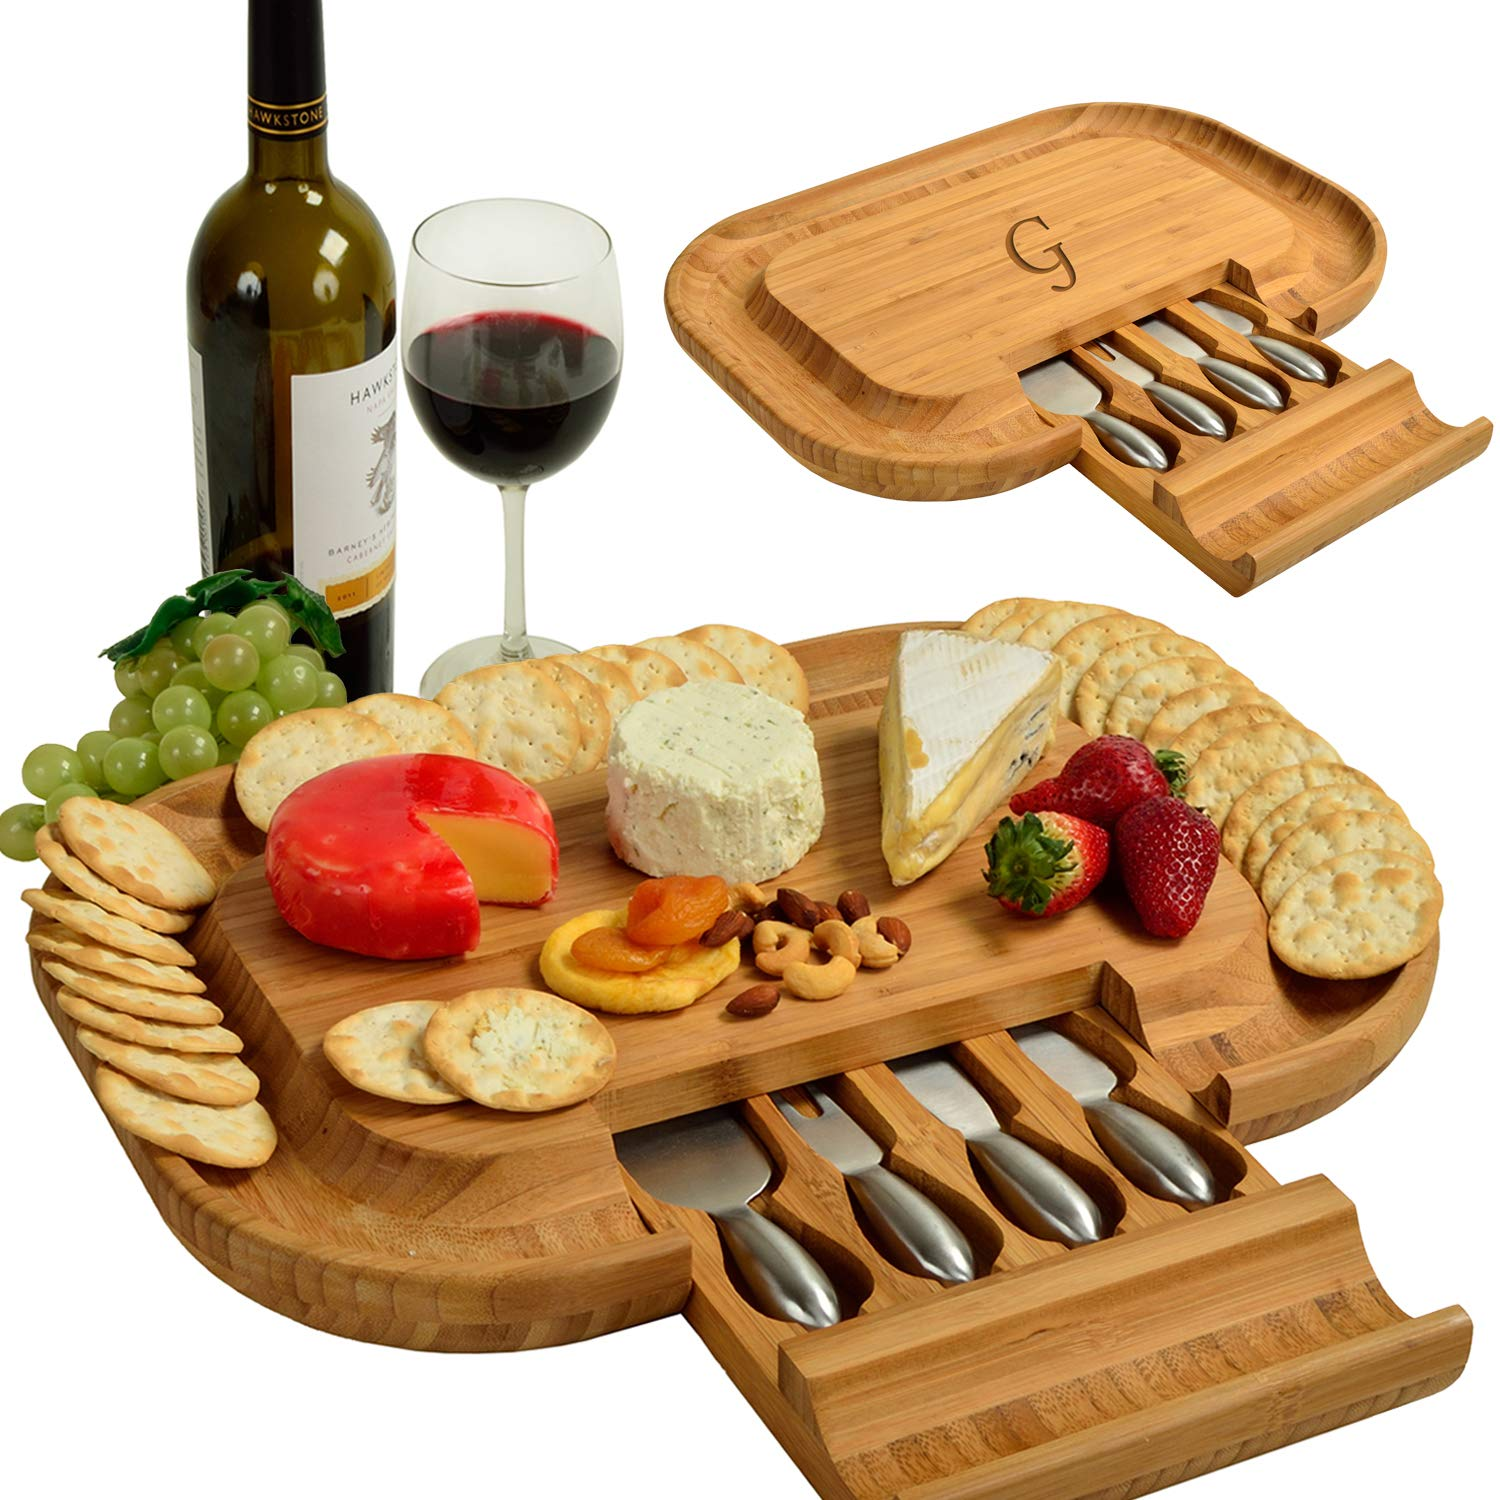 Picnic at Ascot -The''Original'' Personalized Bamboo Cheese Board with Cracker Groove & Integrated Drawer with Cheese Knife Set & Markers- Designed & Quality Assured in the USA - Letter - G